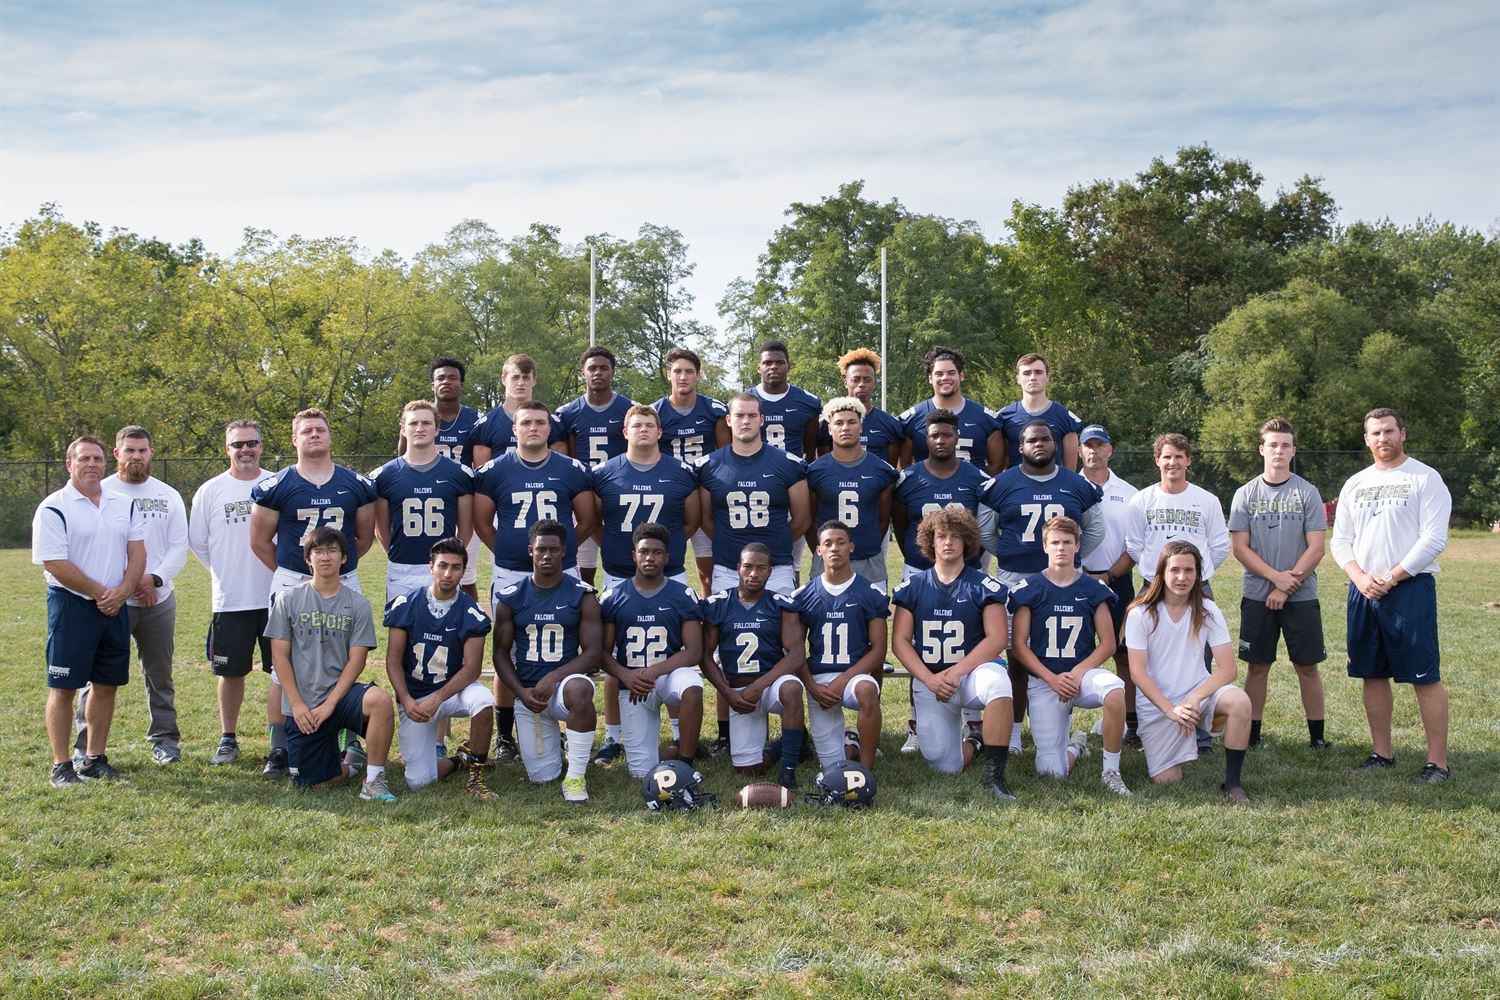 Peddie School - Boys Varsity Football